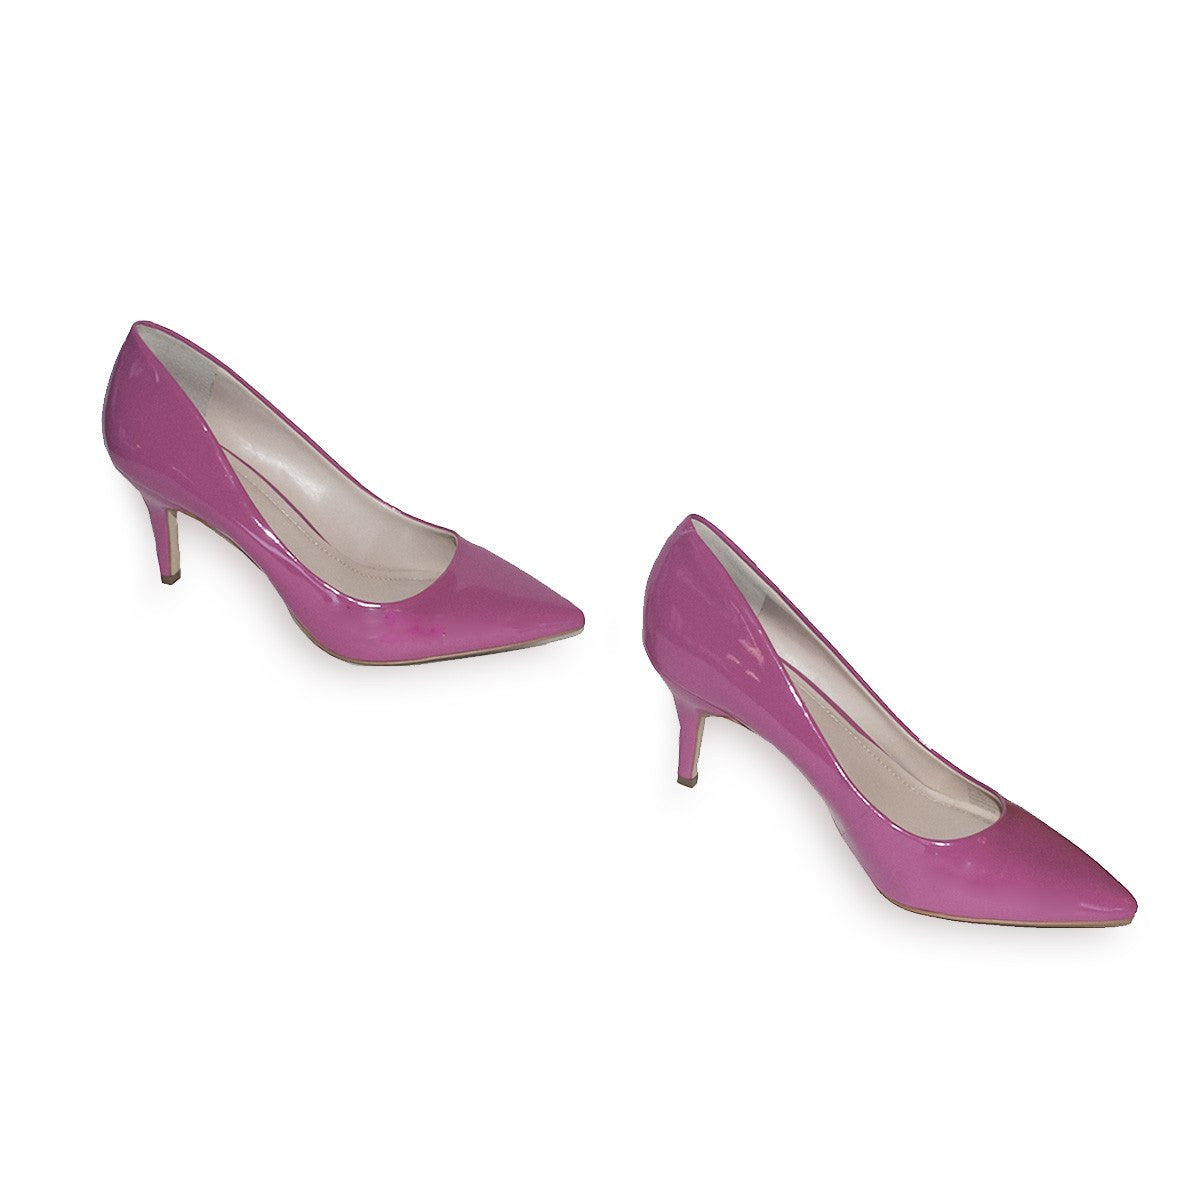 BCBGeneration High Heel Pump, Pink Patent Leather 4